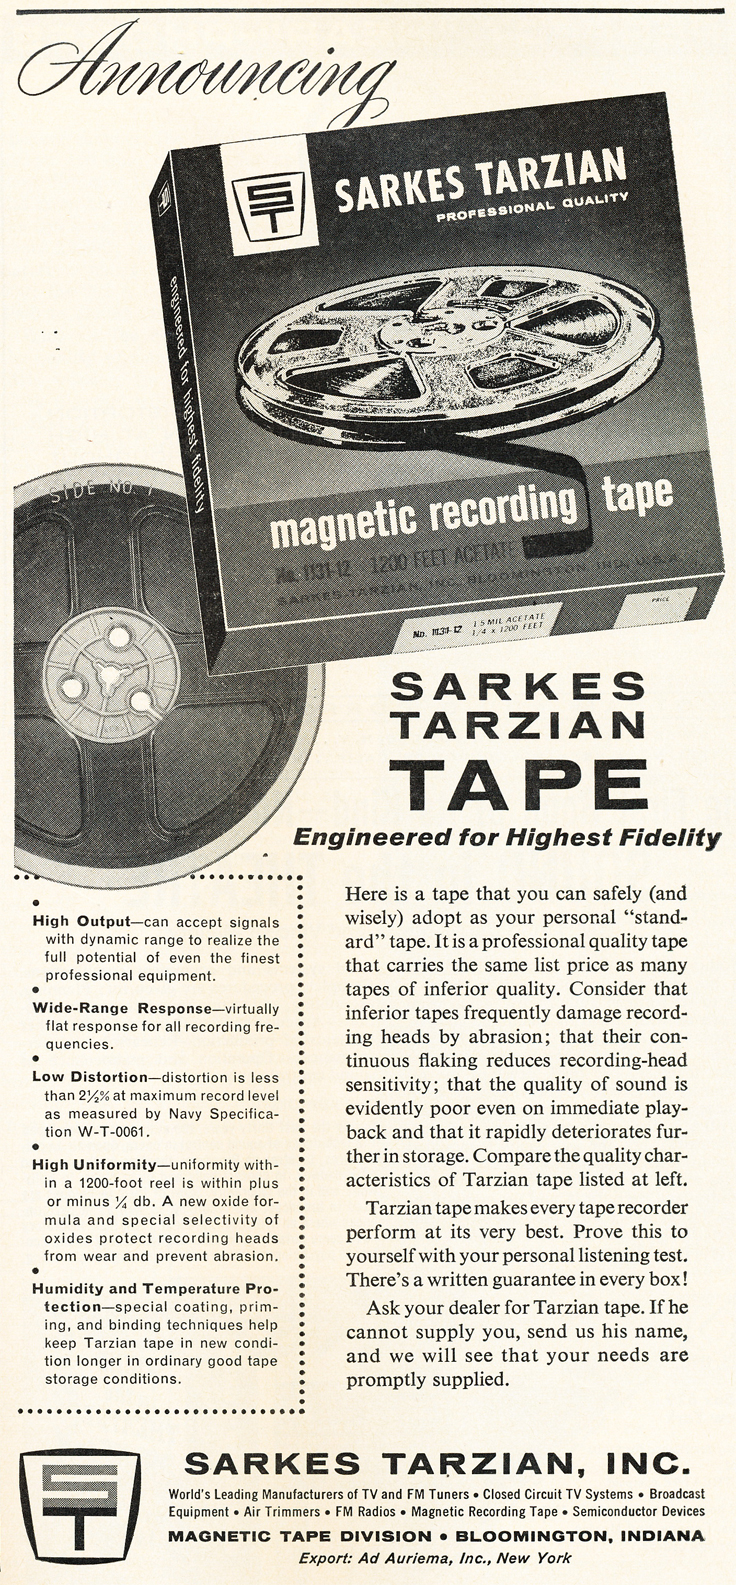 1961 ad for Sarkes Tarzian reel to reel recording tape in Reel2ReelTexas.com's vintage recording collection